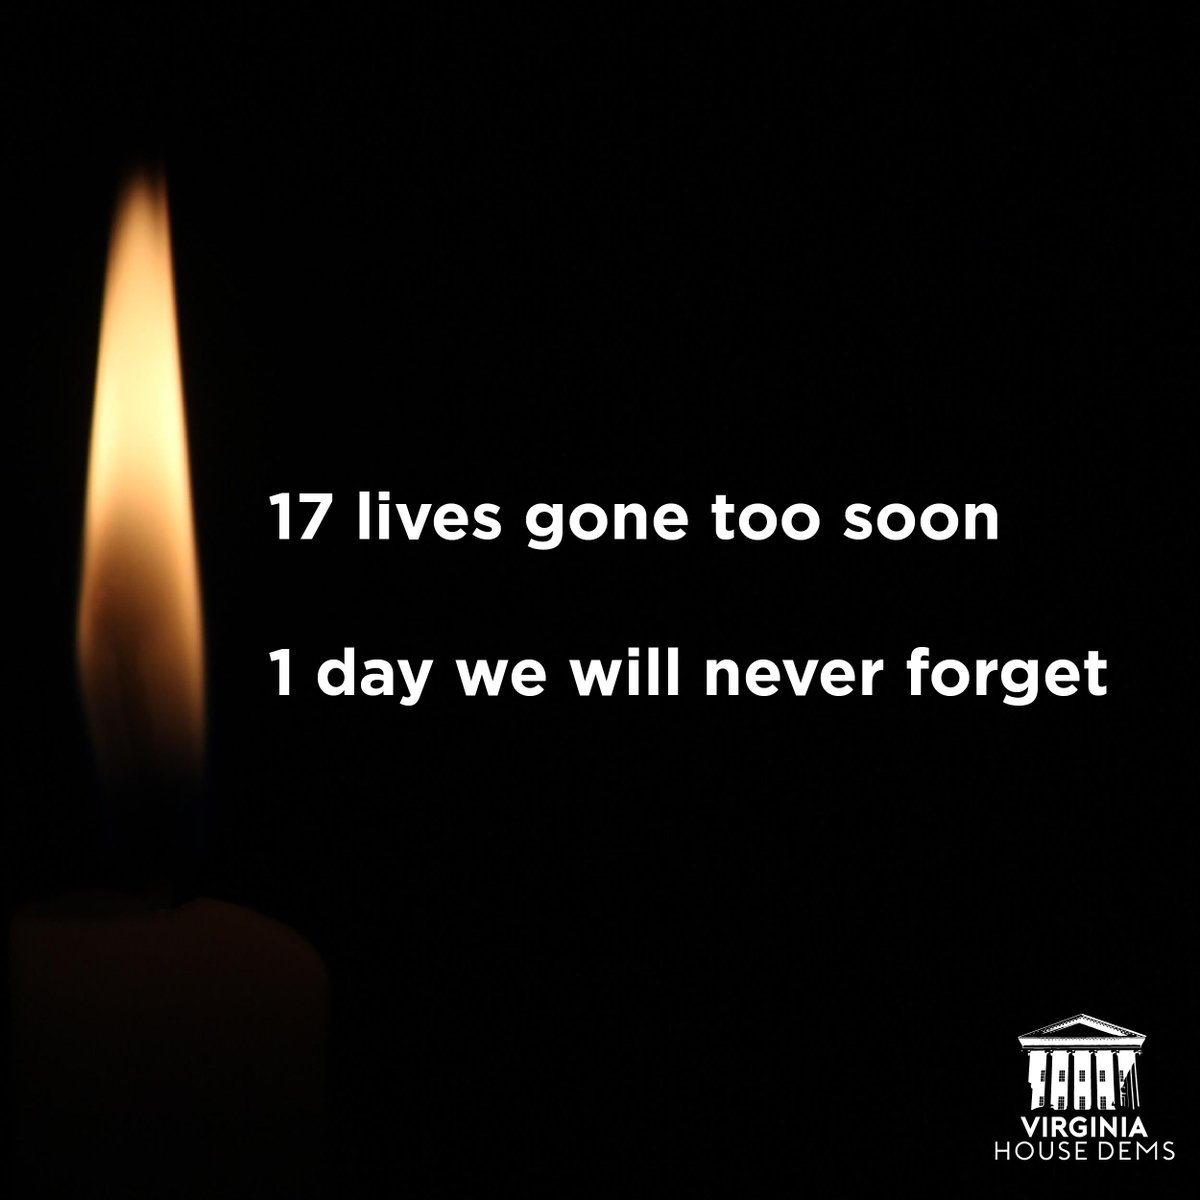 One year ago today, 17 students and staff were murdered by a mass shooter in Parkland, Florida.   This day will haunt us forever. May we never stop working to prevent senseless gun violence.